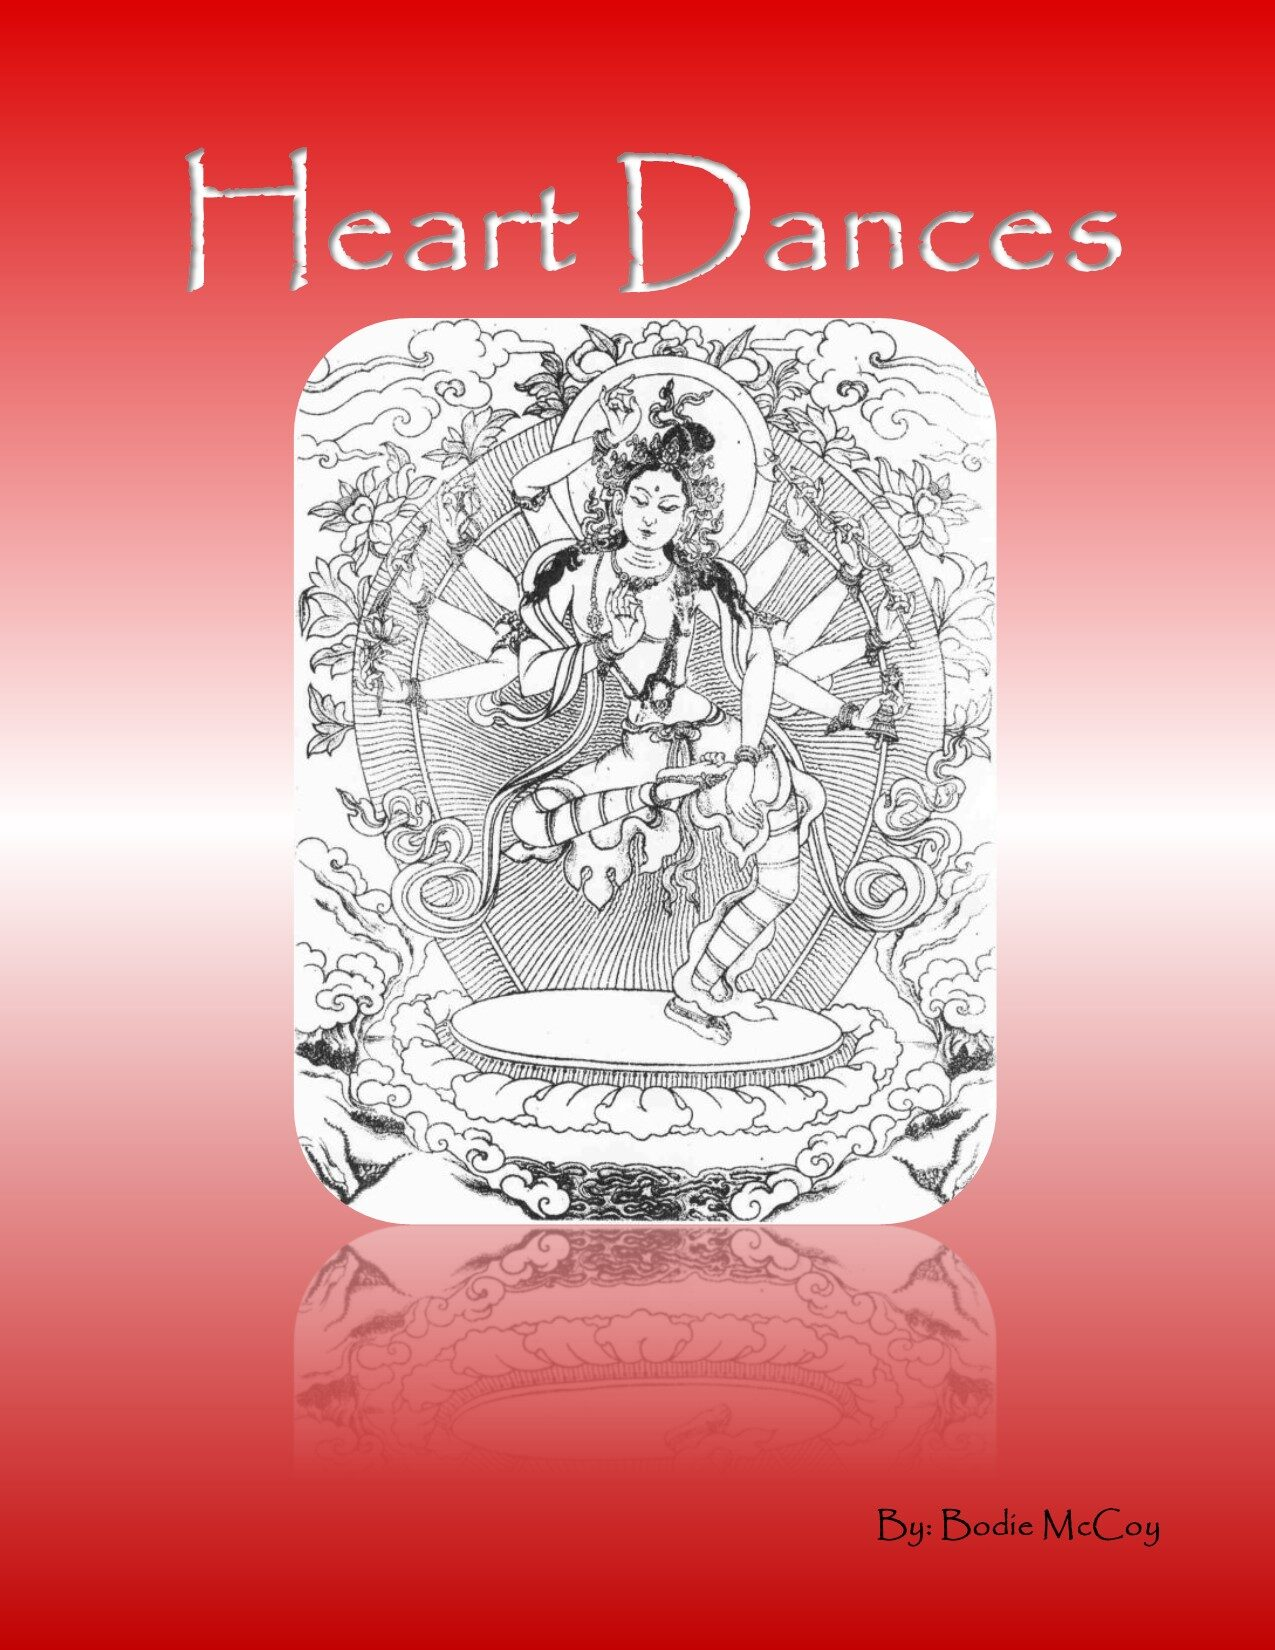 Heart Dances book by Bodie McCoystore